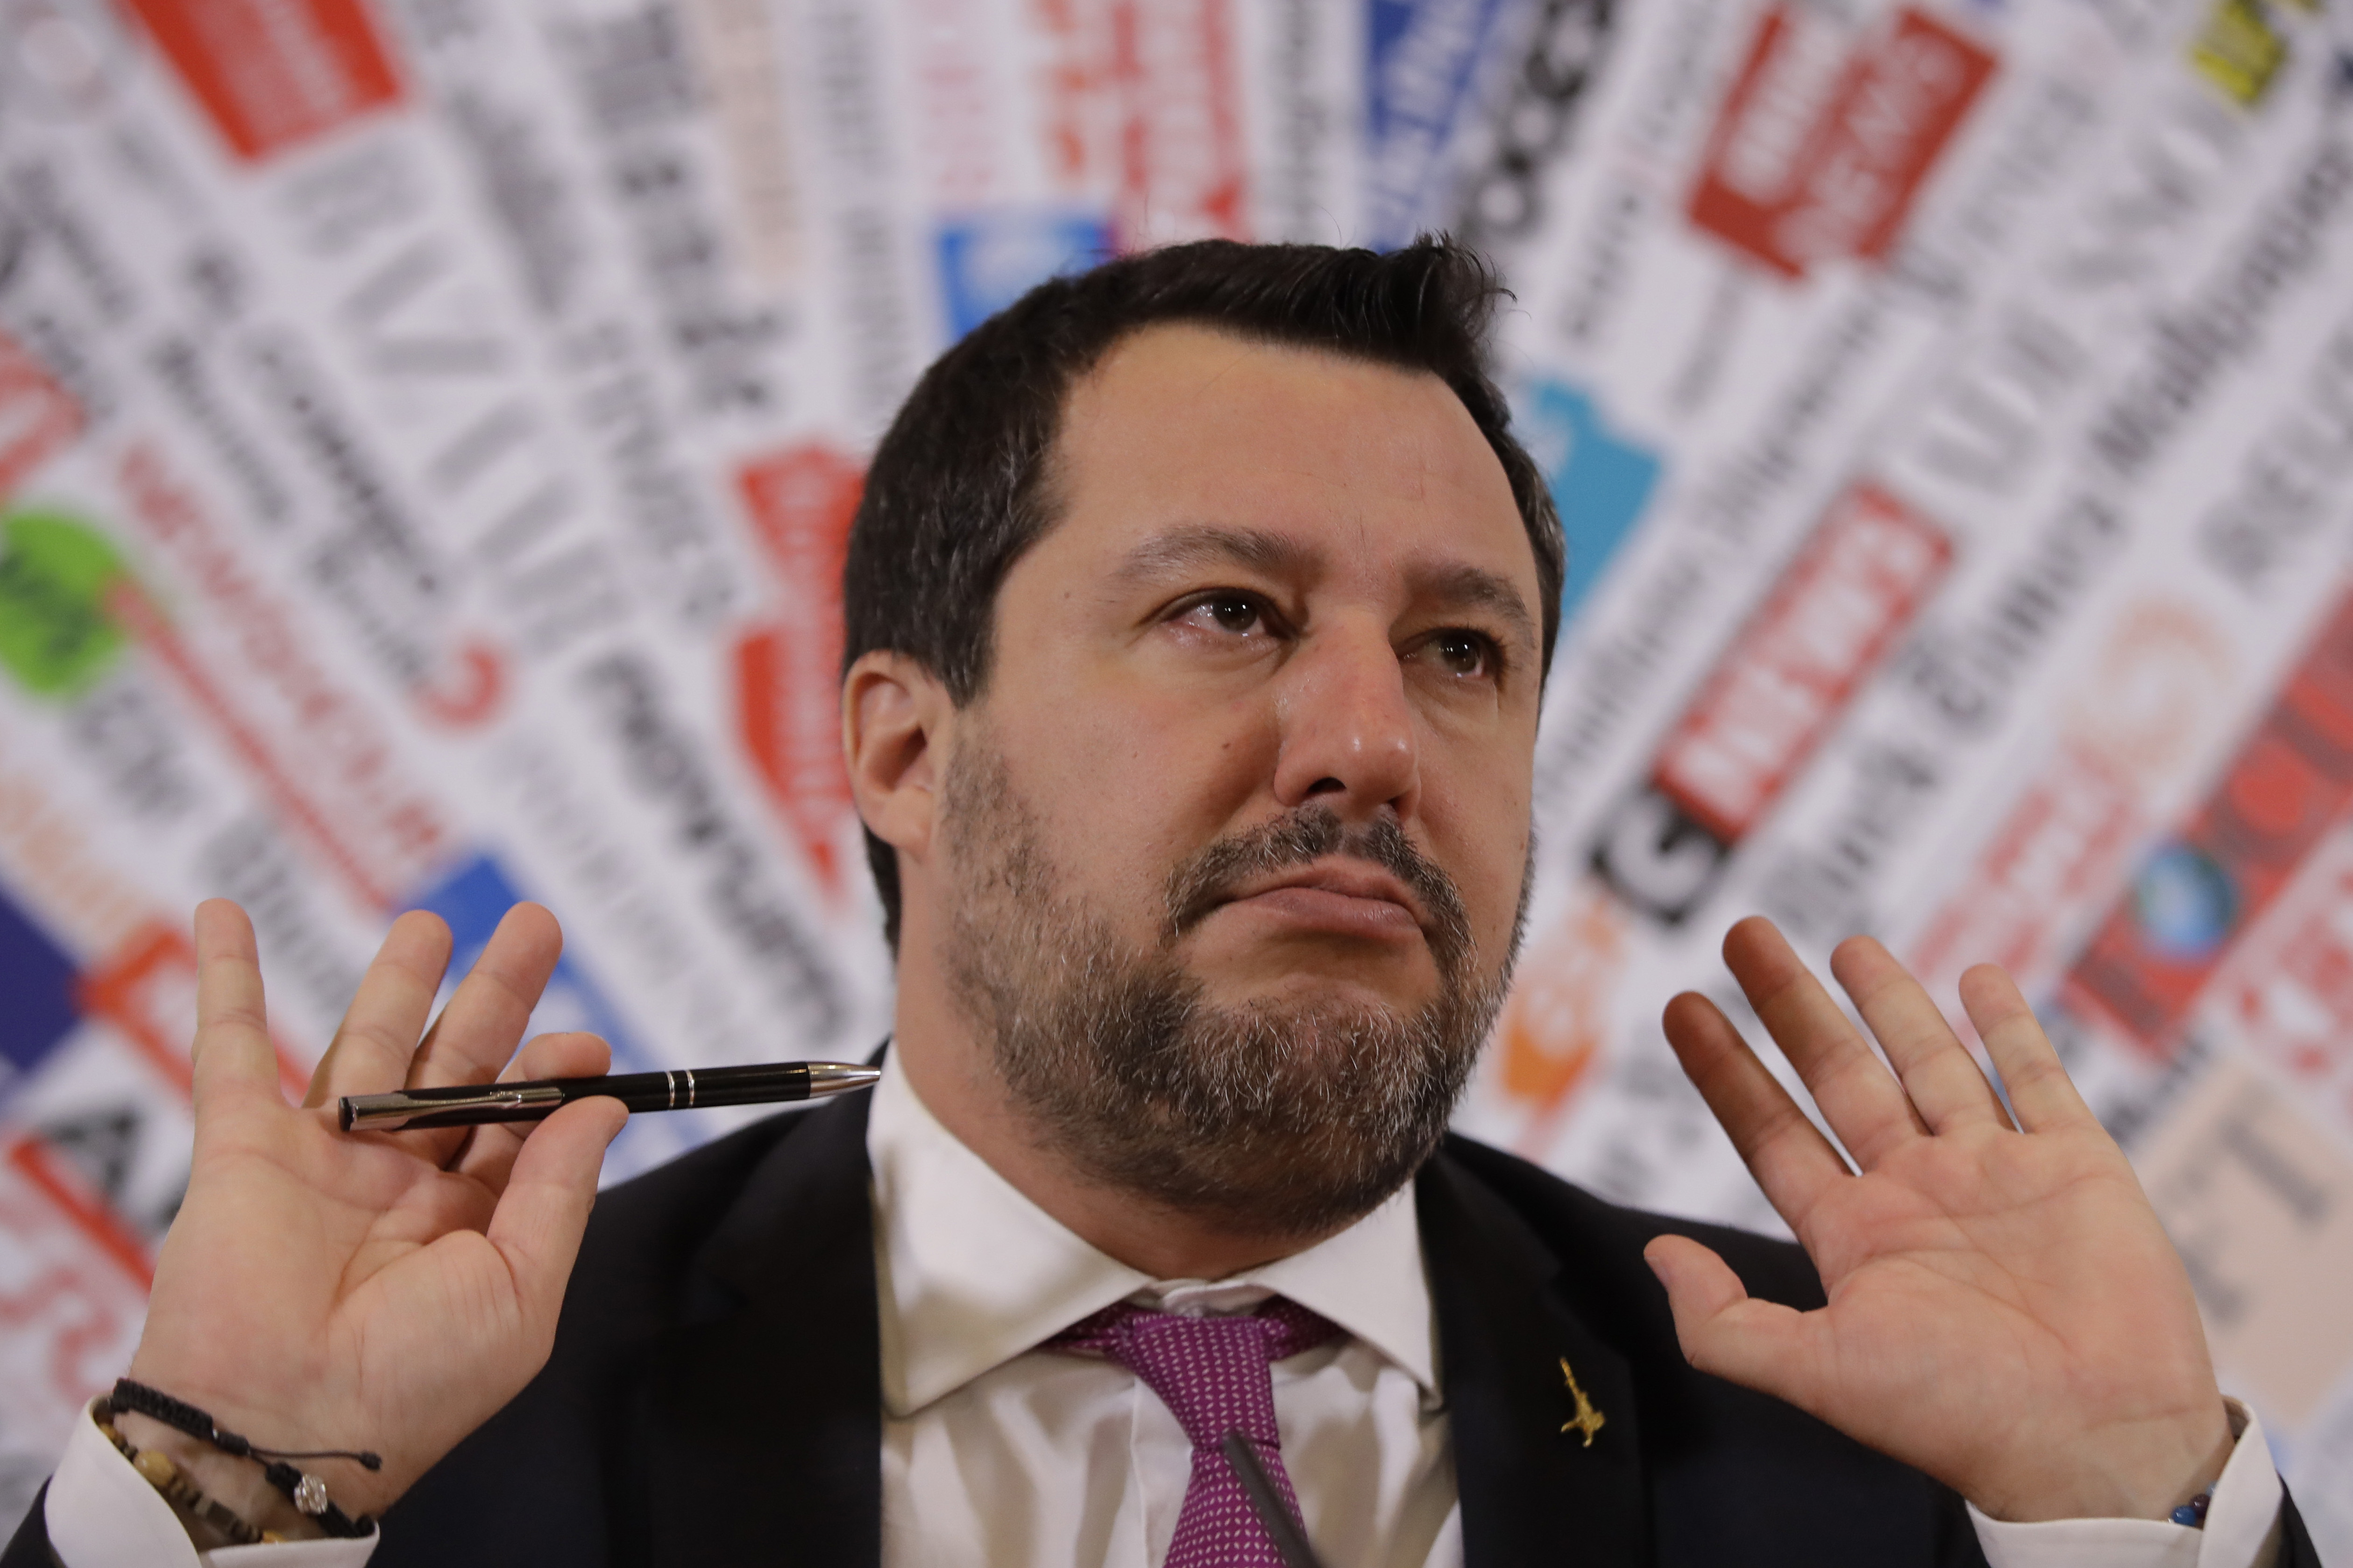 Italy's Salvini Abortion Comments Fuel Ire